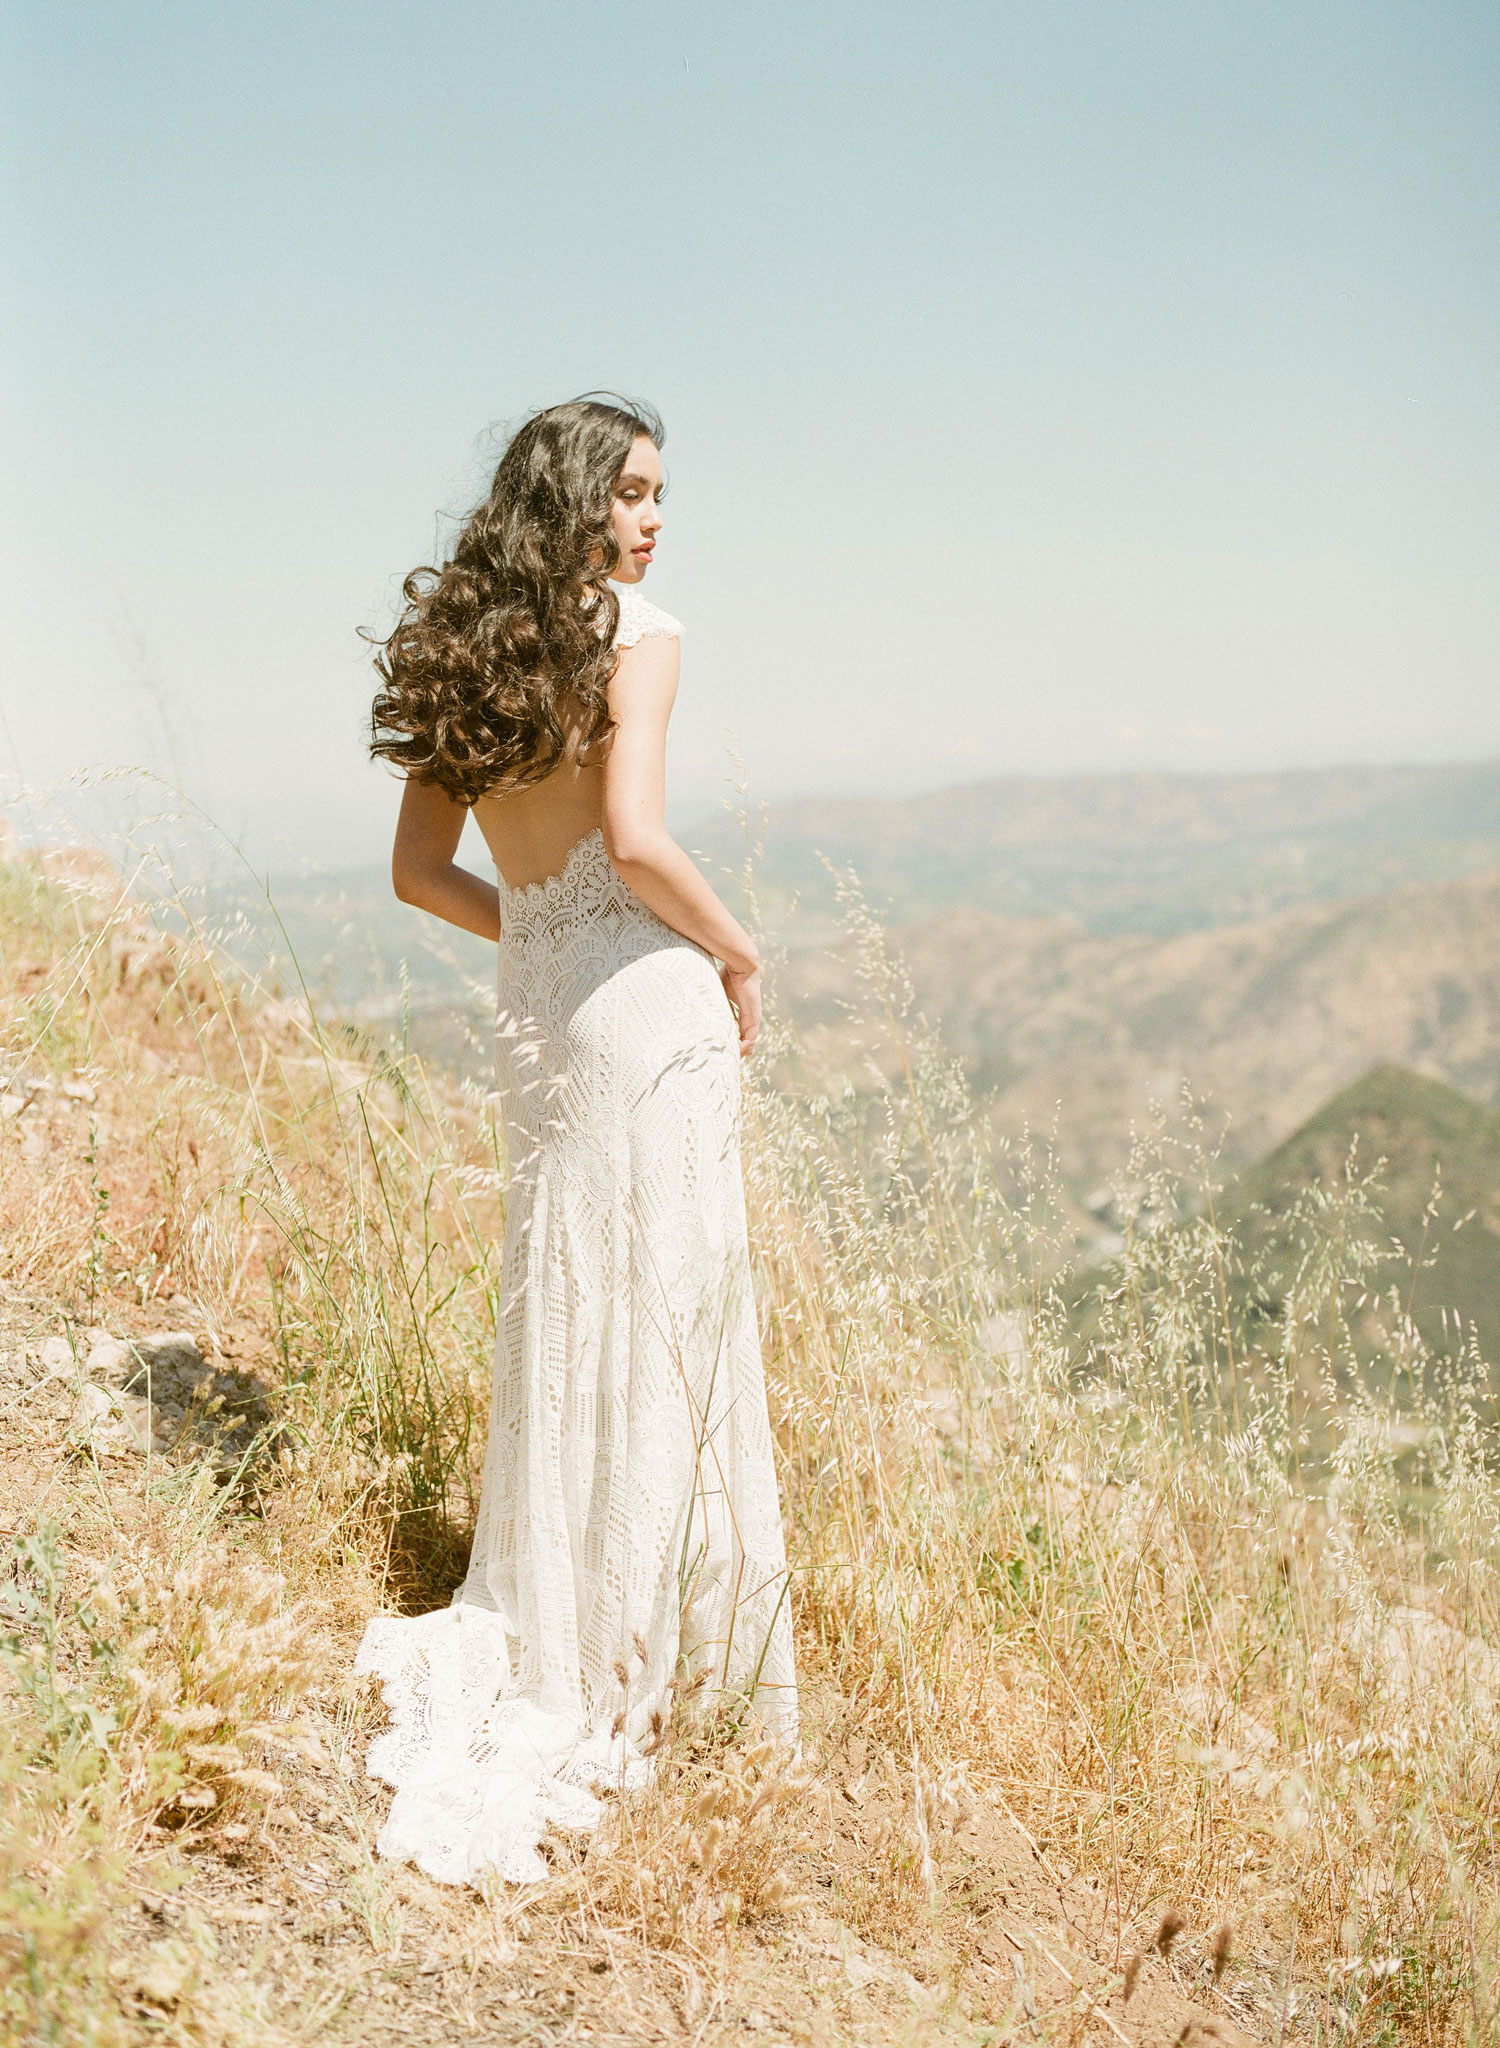 Claire Pettibone Romantique 2018 The Vineyard Collection Calistoga cap sleeve keyhole back wedding dress